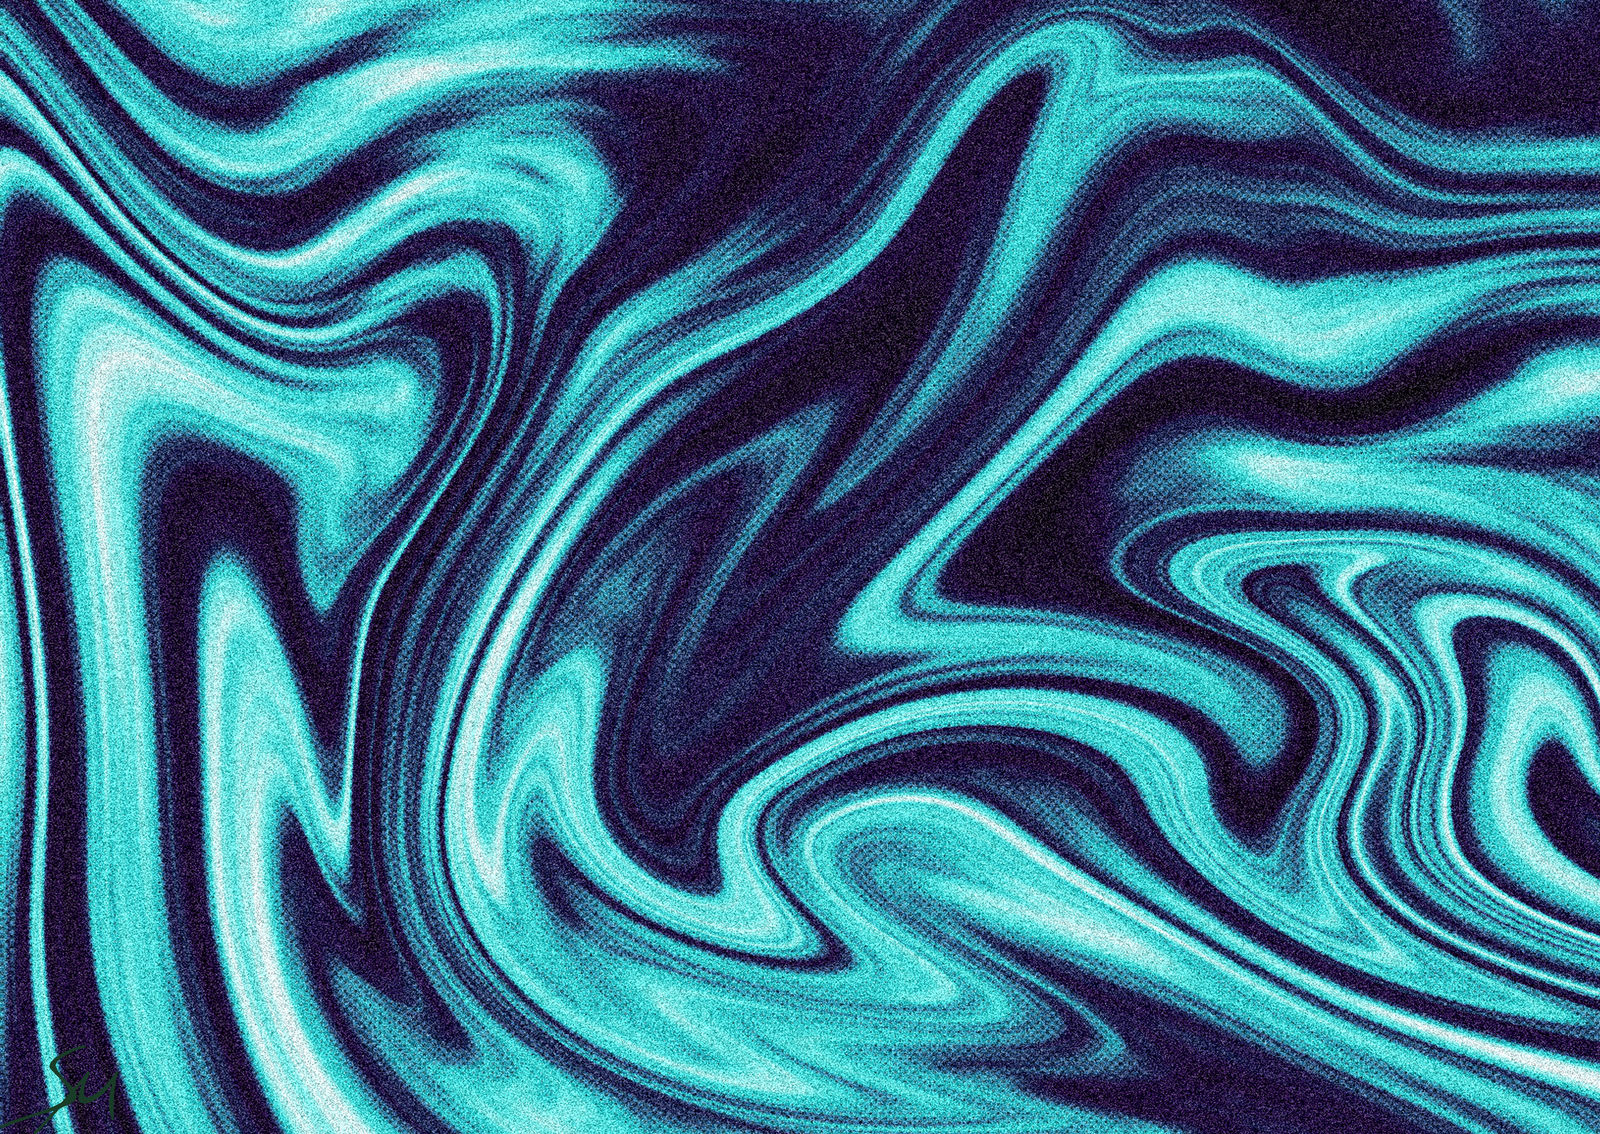 Liquified Clouds 0603